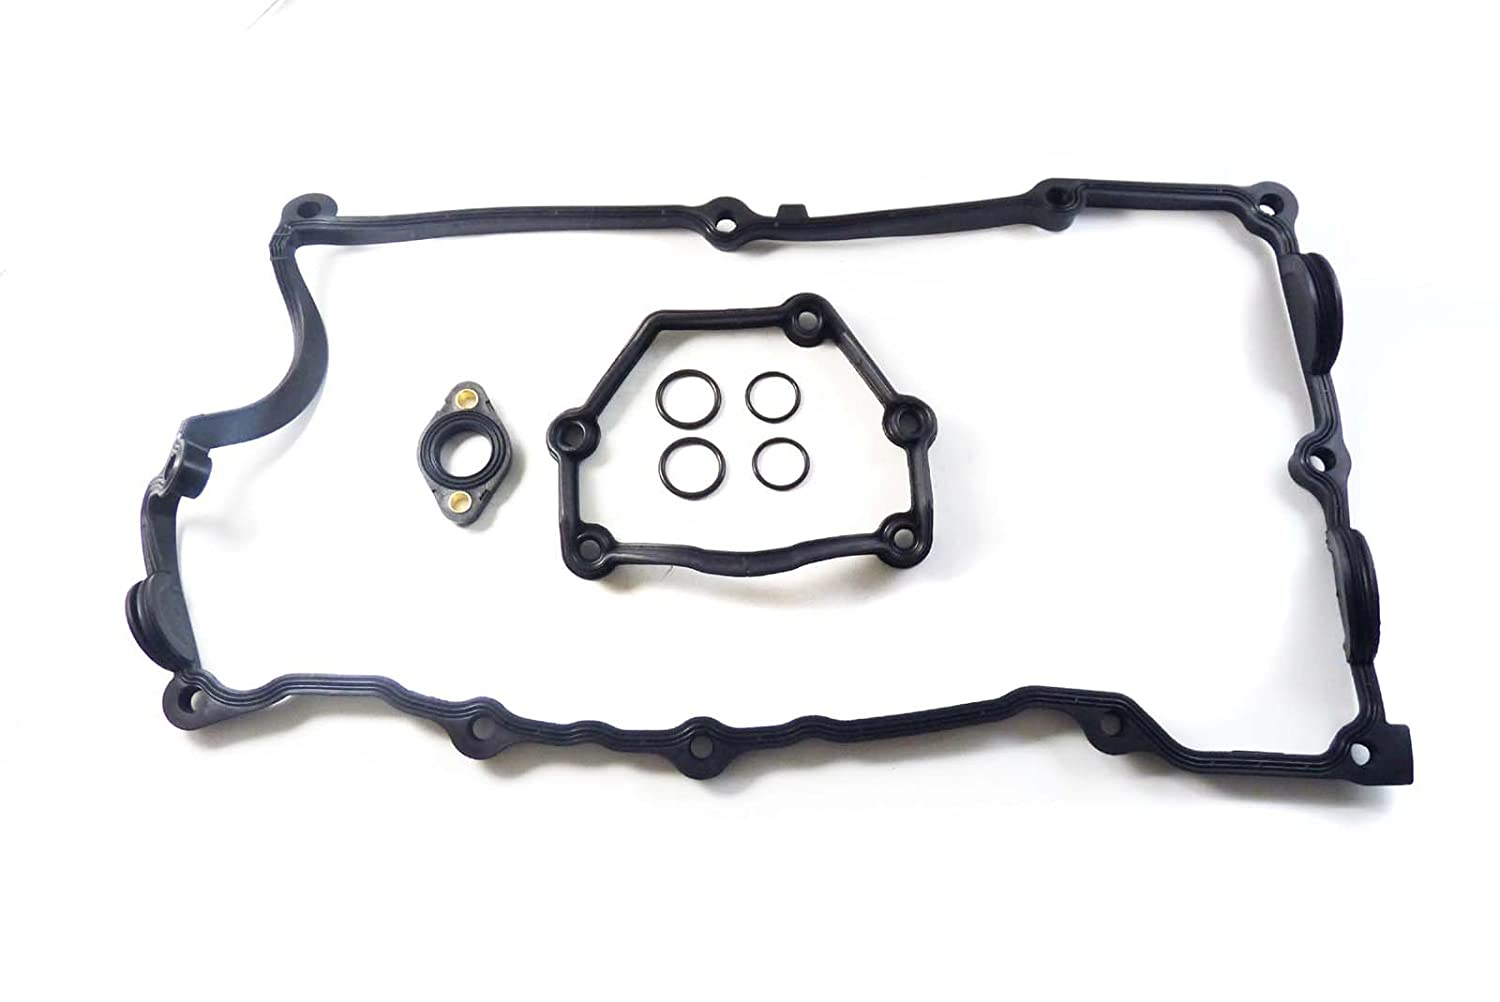 Set Engine Valve Cover Flange Gasket O-Ring 11120032224 NEW FOR BMW 428i xDrive 328i xDrive 528i xDrive 535i X1 X 3 2011 2012 2013 2014 Rejog4 Auto